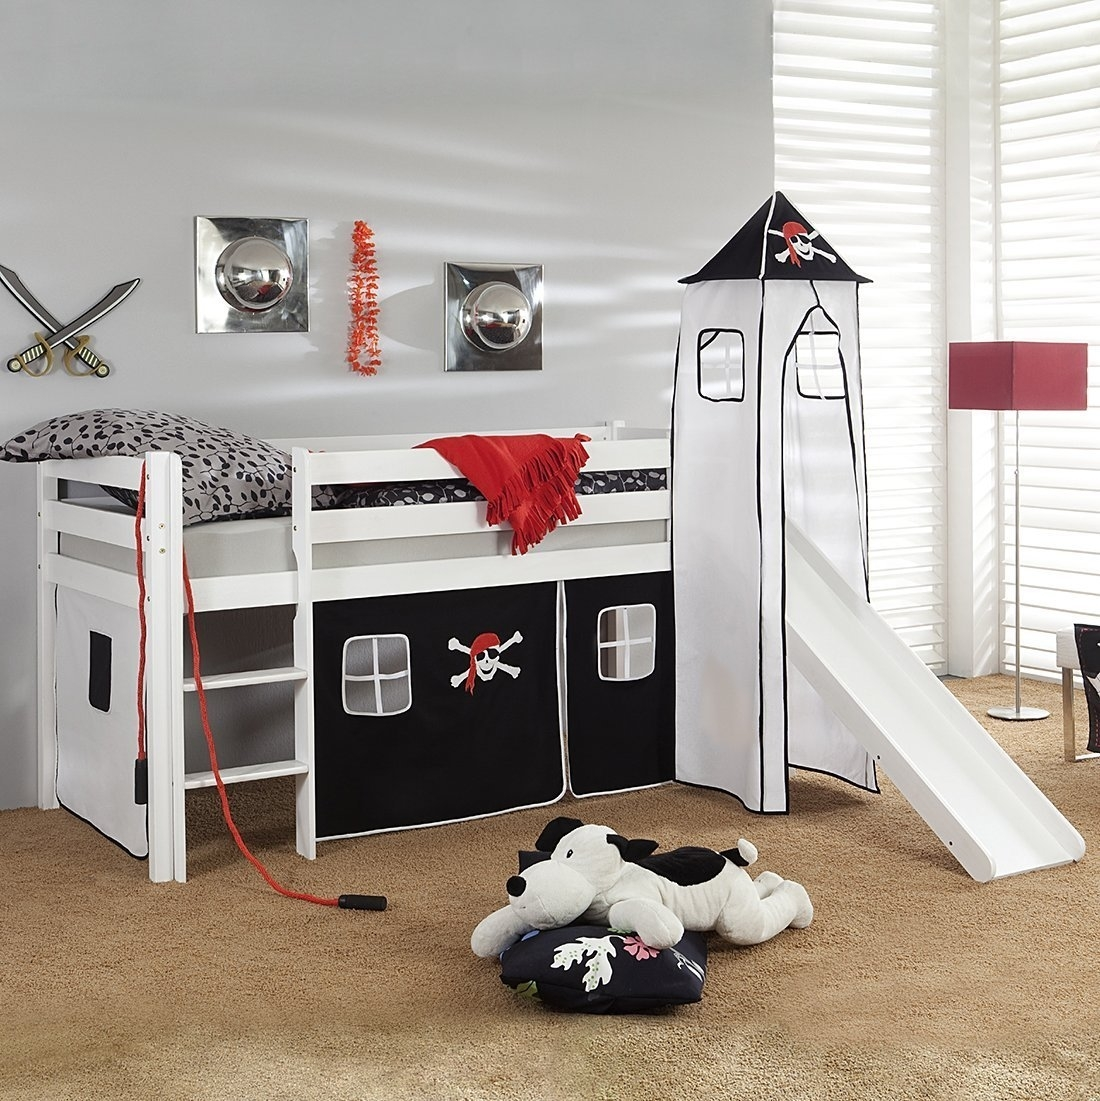 kinder hochbett aruba piratenbett mit turm und rutsche von elfo g nstig bestellen skanm bler. Black Bedroom Furniture Sets. Home Design Ideas